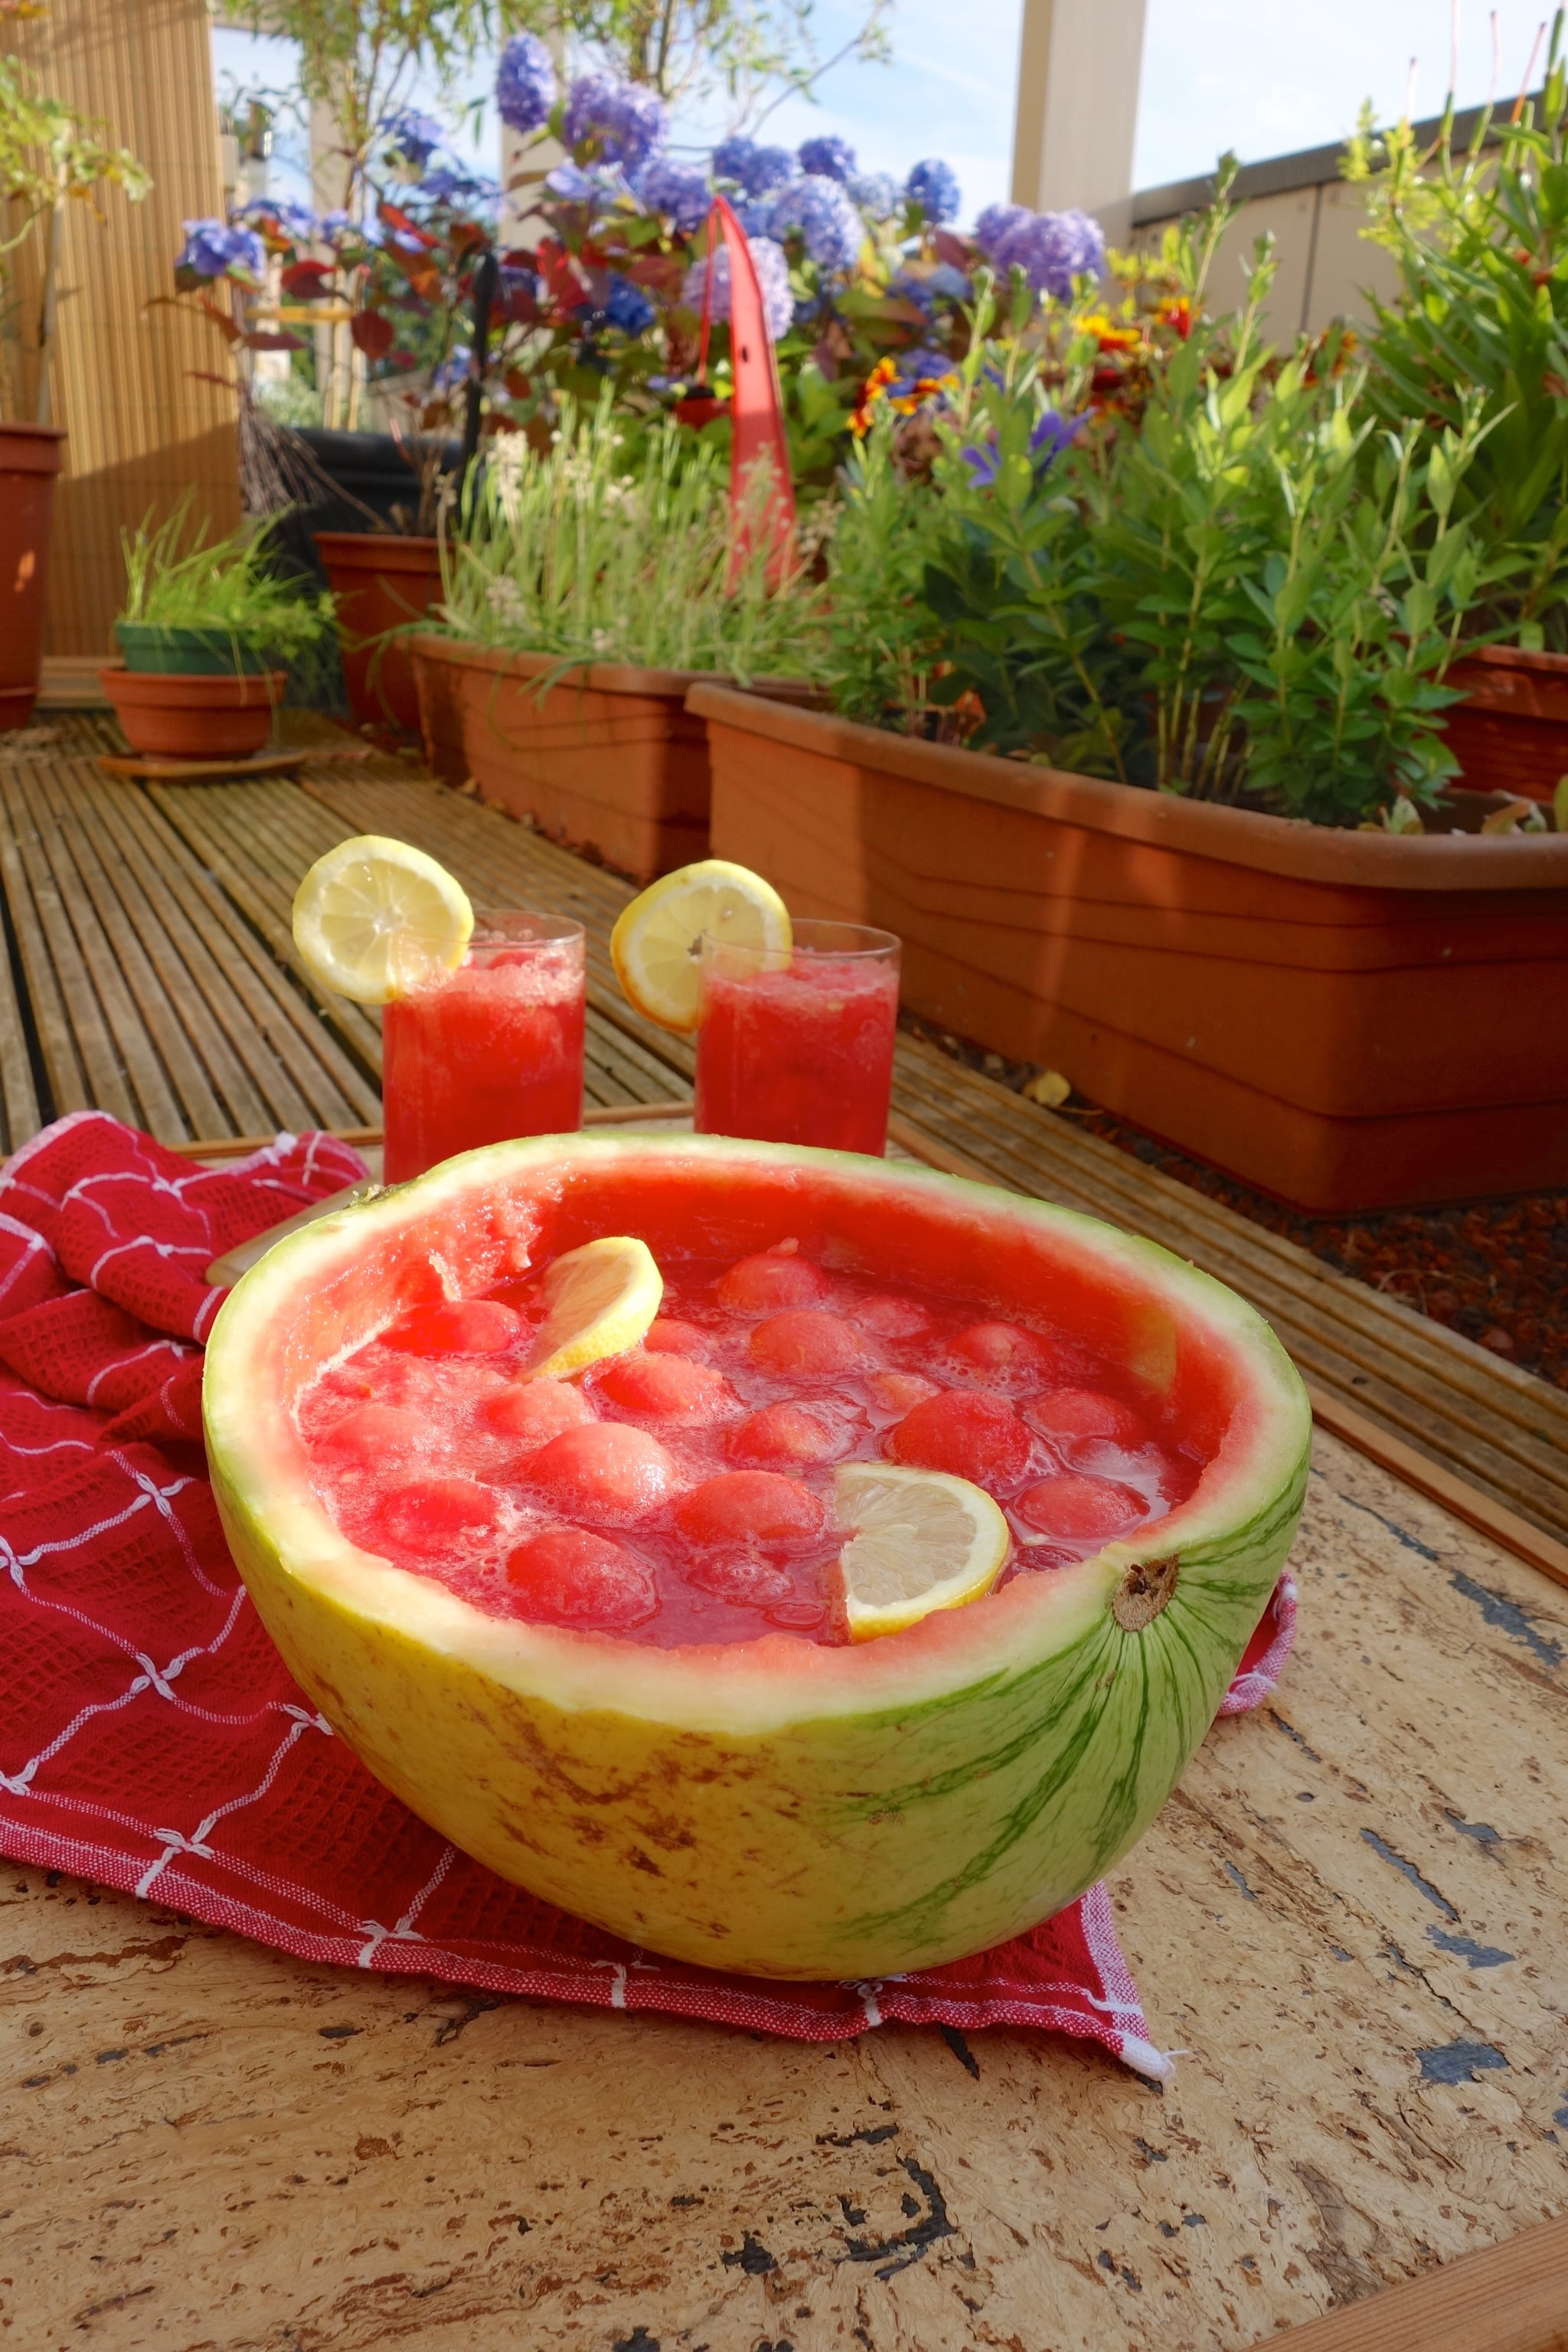 PopsugarLivingFood NewsWatermelon Punch Bowl Perfect For Your Summer PartyNothing Goes to Waste With This Party-Perfect Watermelon Punch BowlJuly 19, 2016 by Daniella Davidoff20 SharesChat with us on Facebook Messenger. Learn what's trending across POPSUGAR.You need this watermelon punch bowl at your next Summer party — Martha Stewart6 inventive ways to cook with ricotta, from breakfast to dessert — Real SimpleThe trick to making kale actually taste good — PureWow5 superb vodka drinks you need to taste to add to your cocktail arsenal — Liquor23 Brazilian dishes that'll put you in a serious Olympic mood — POPSUGAR LatinaImage Source: Shutterstock Join the conversationChat with us on Facebook Messenger. Learn what's trending across POPSUGAR.Food NewsFrom Our PartnersWant more?Get Your Daily Life HackSign up for our newsletter.By signing up, I agree to the Terms & to receive emails from POPSUGAR.CustomizeSelect the topics that interest you:Pop CultureLove and SexHealthy LivingLifestyleThanks!You're sub - 웹